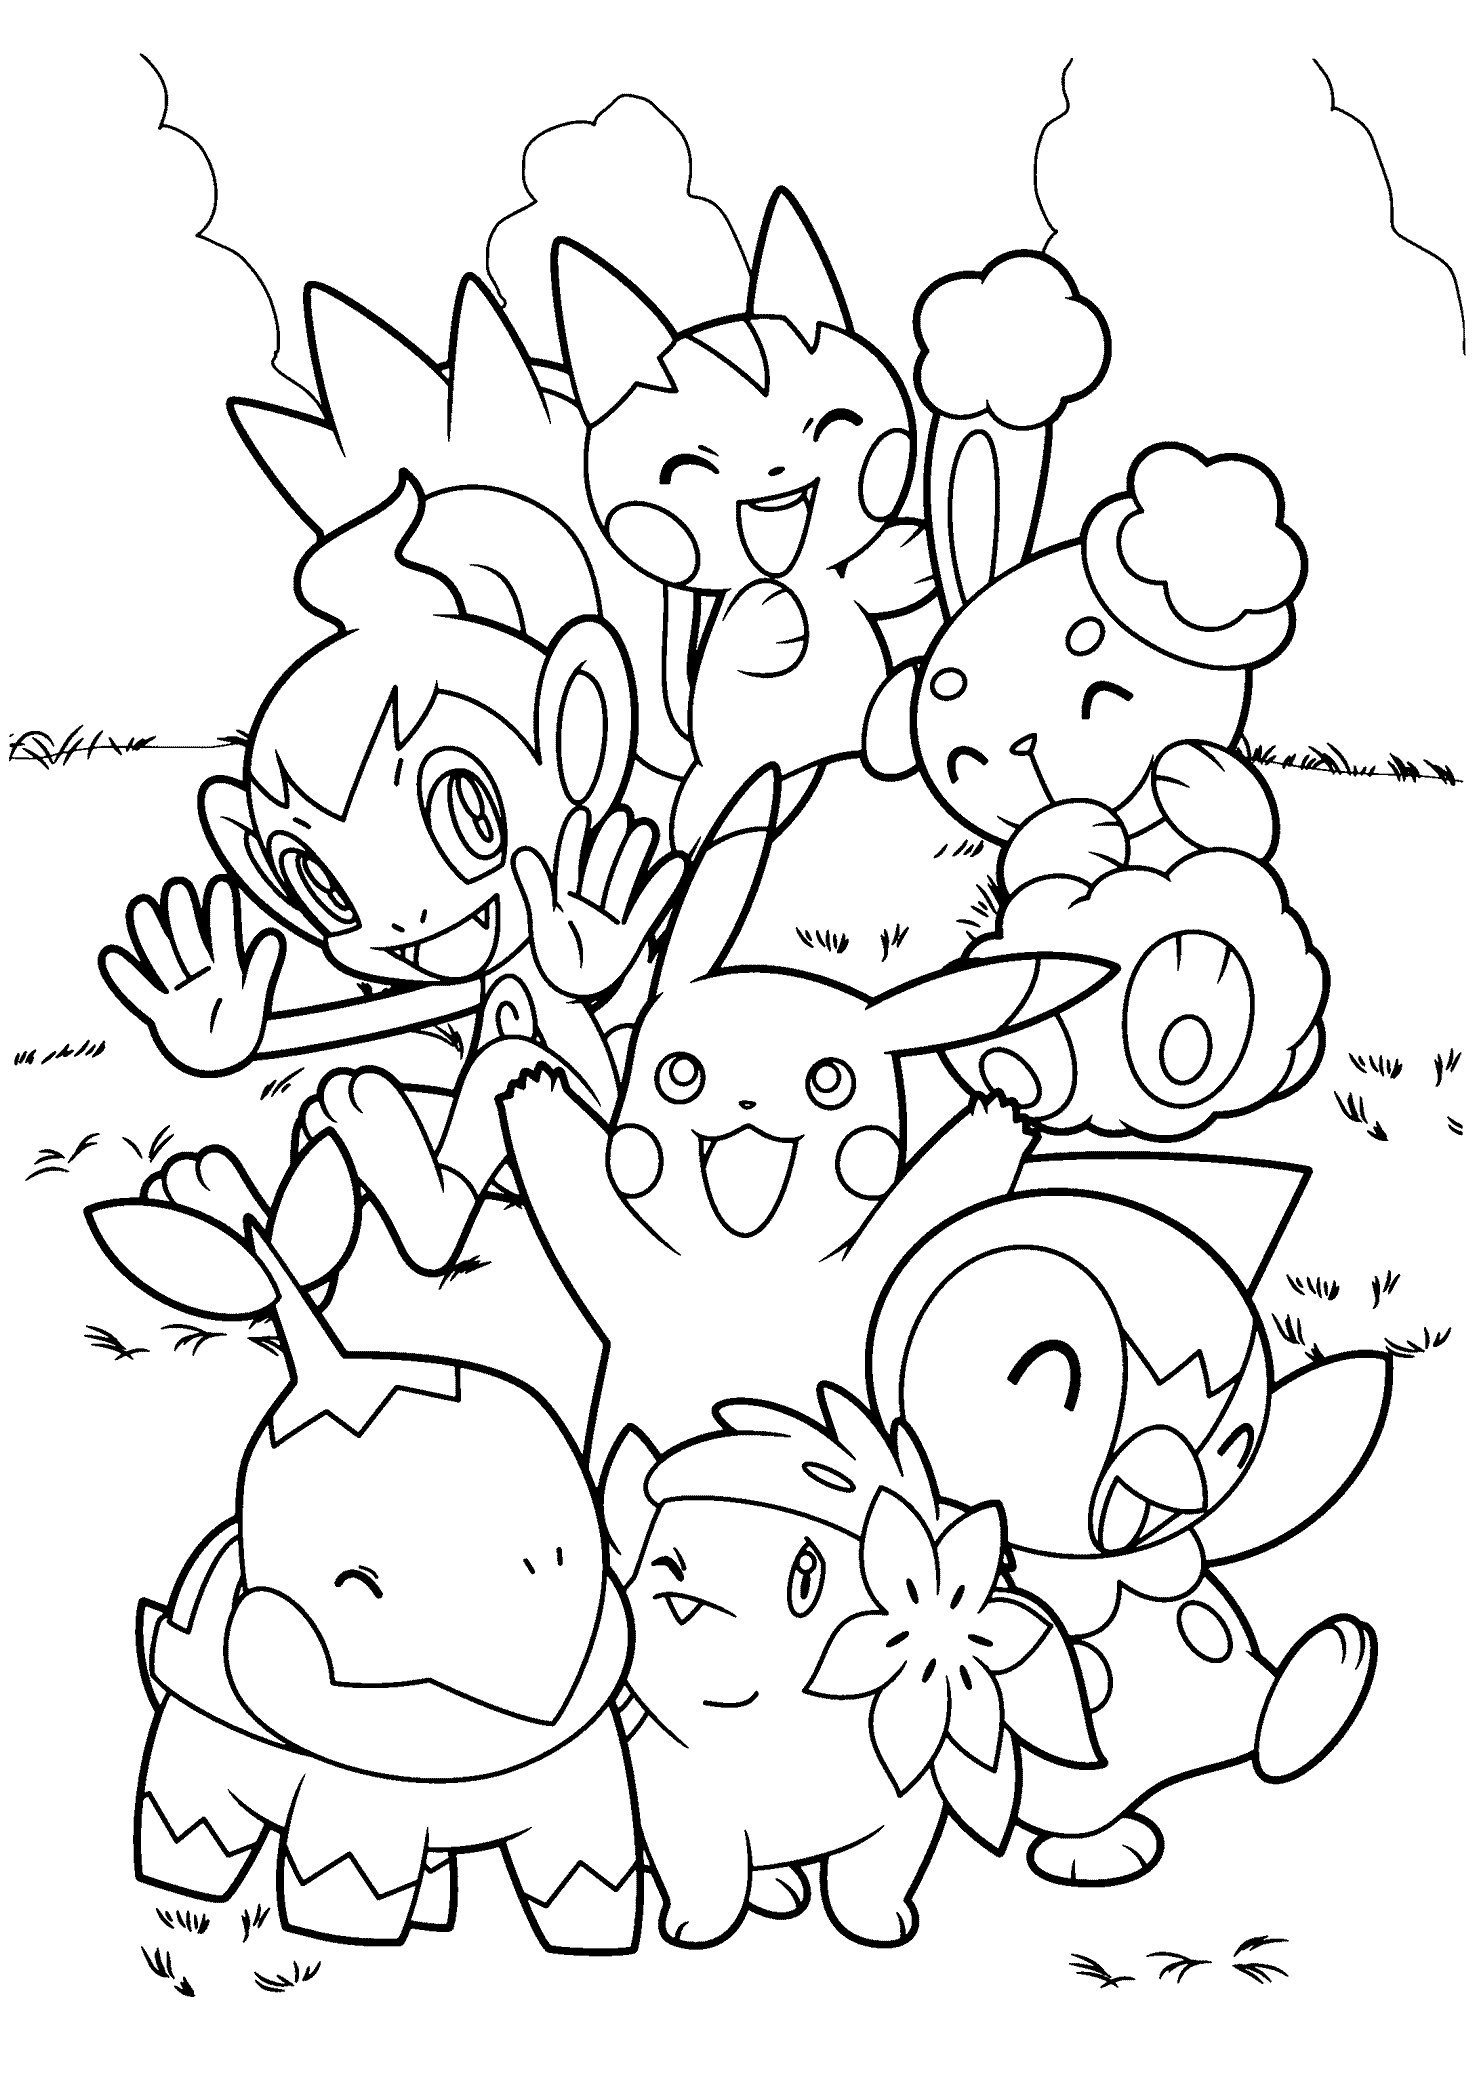 pokemon coloring by number sylveon pokemon color by number printable woo jr kids by number pokemon coloring